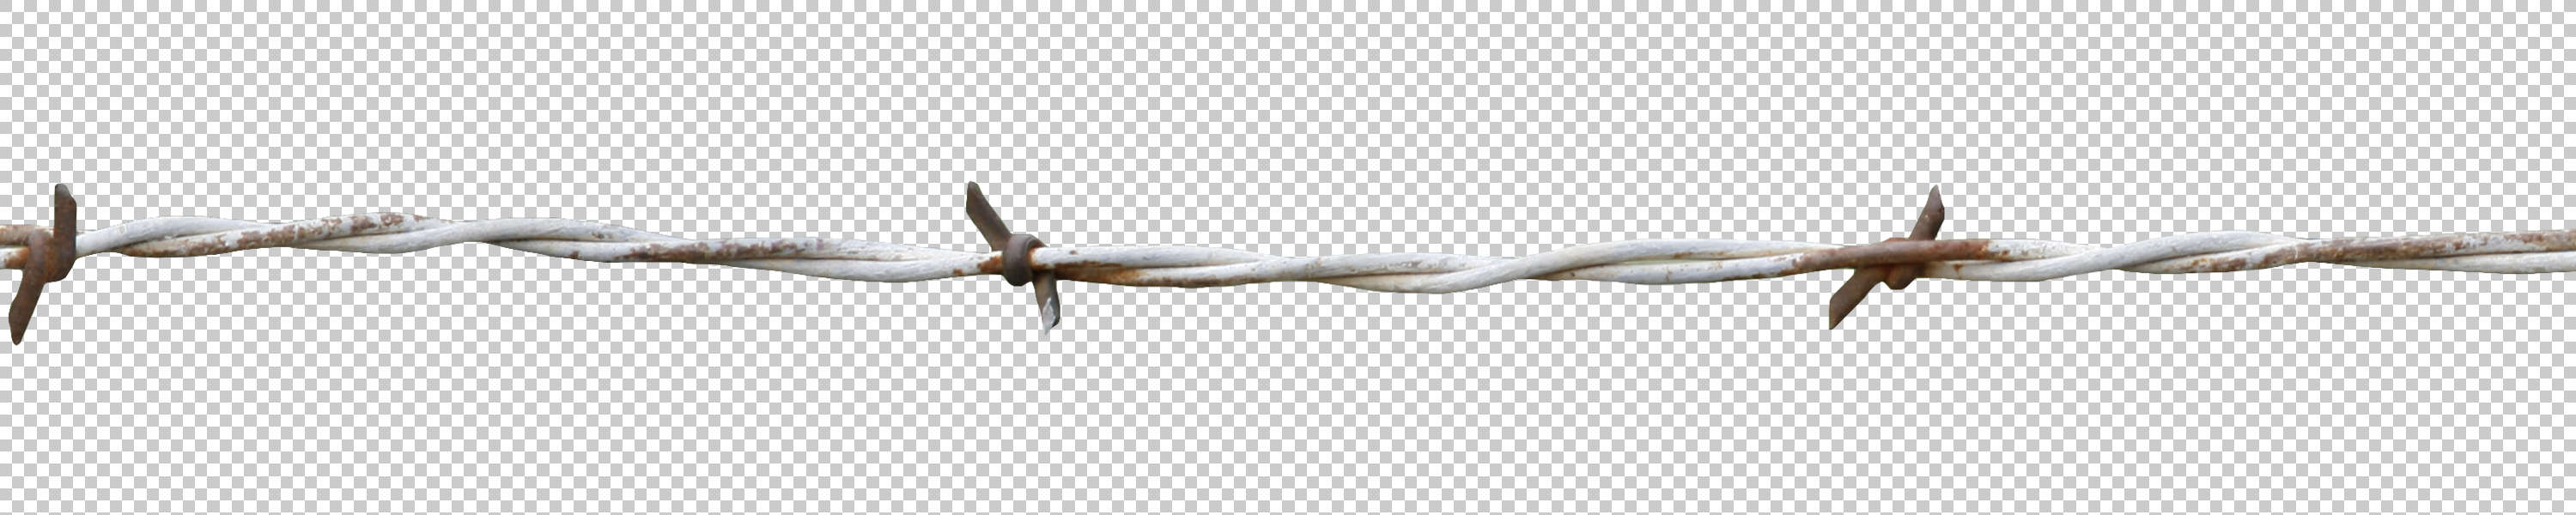 MetalVarious0043 - Free Background Texture - barbed wire gray grey ...